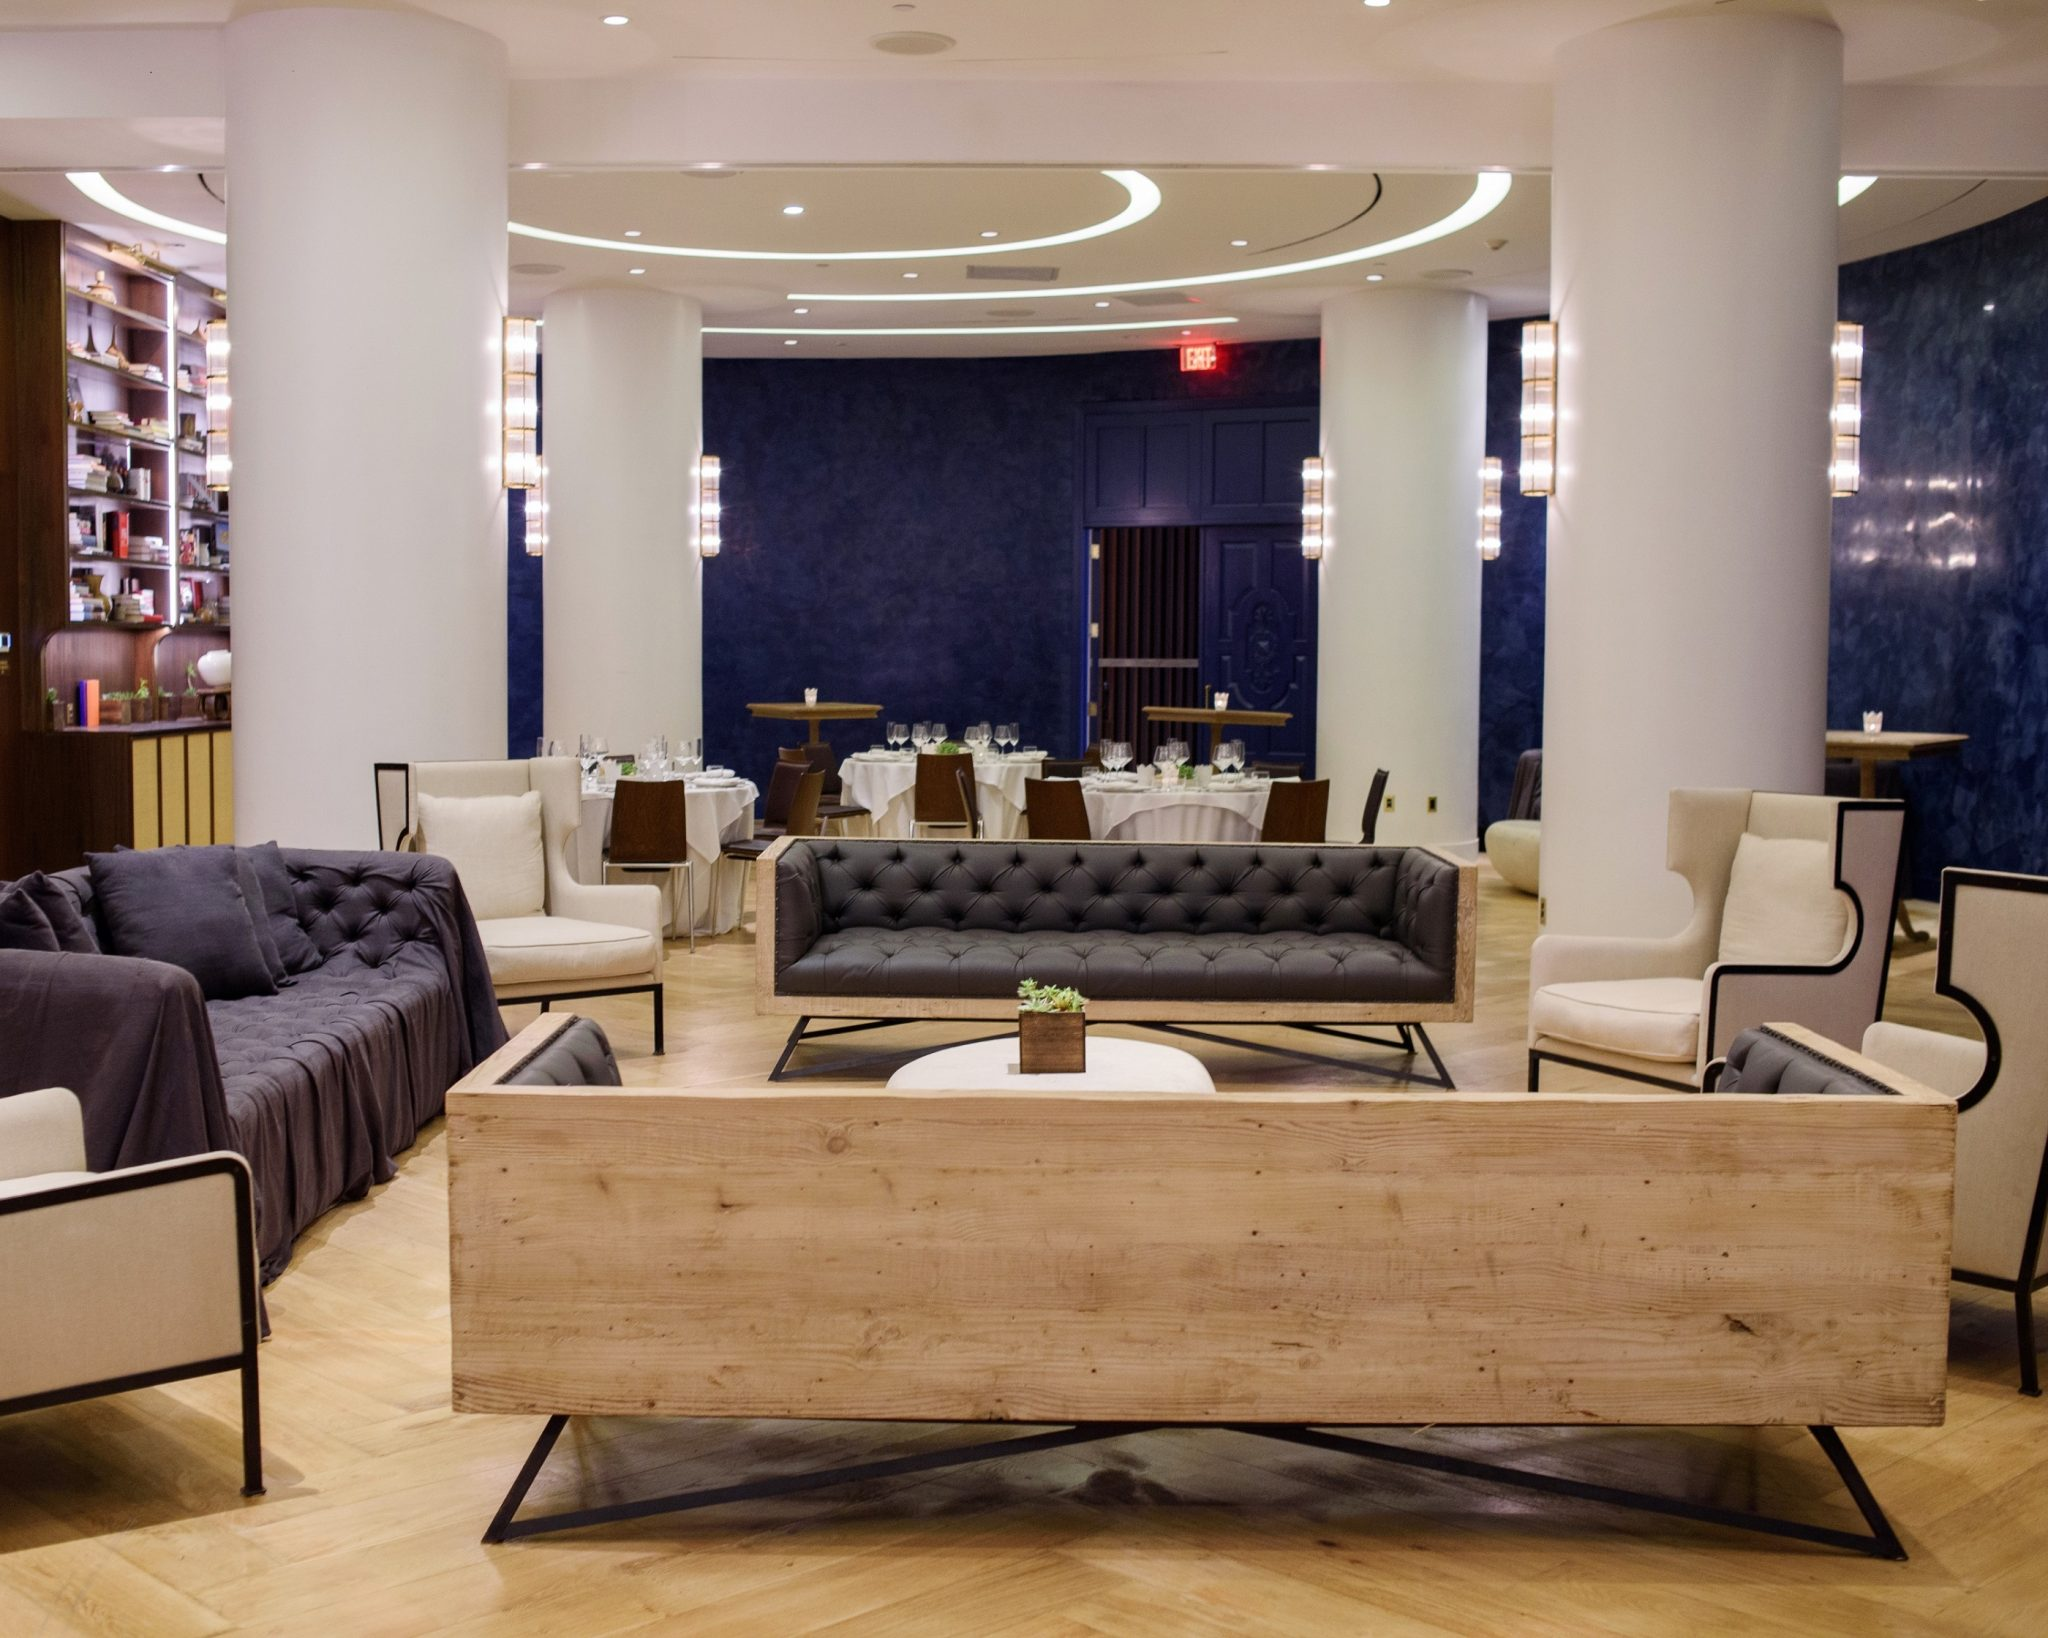 tufted blue gray sofas in middle of room with blue walls bar and four pillars